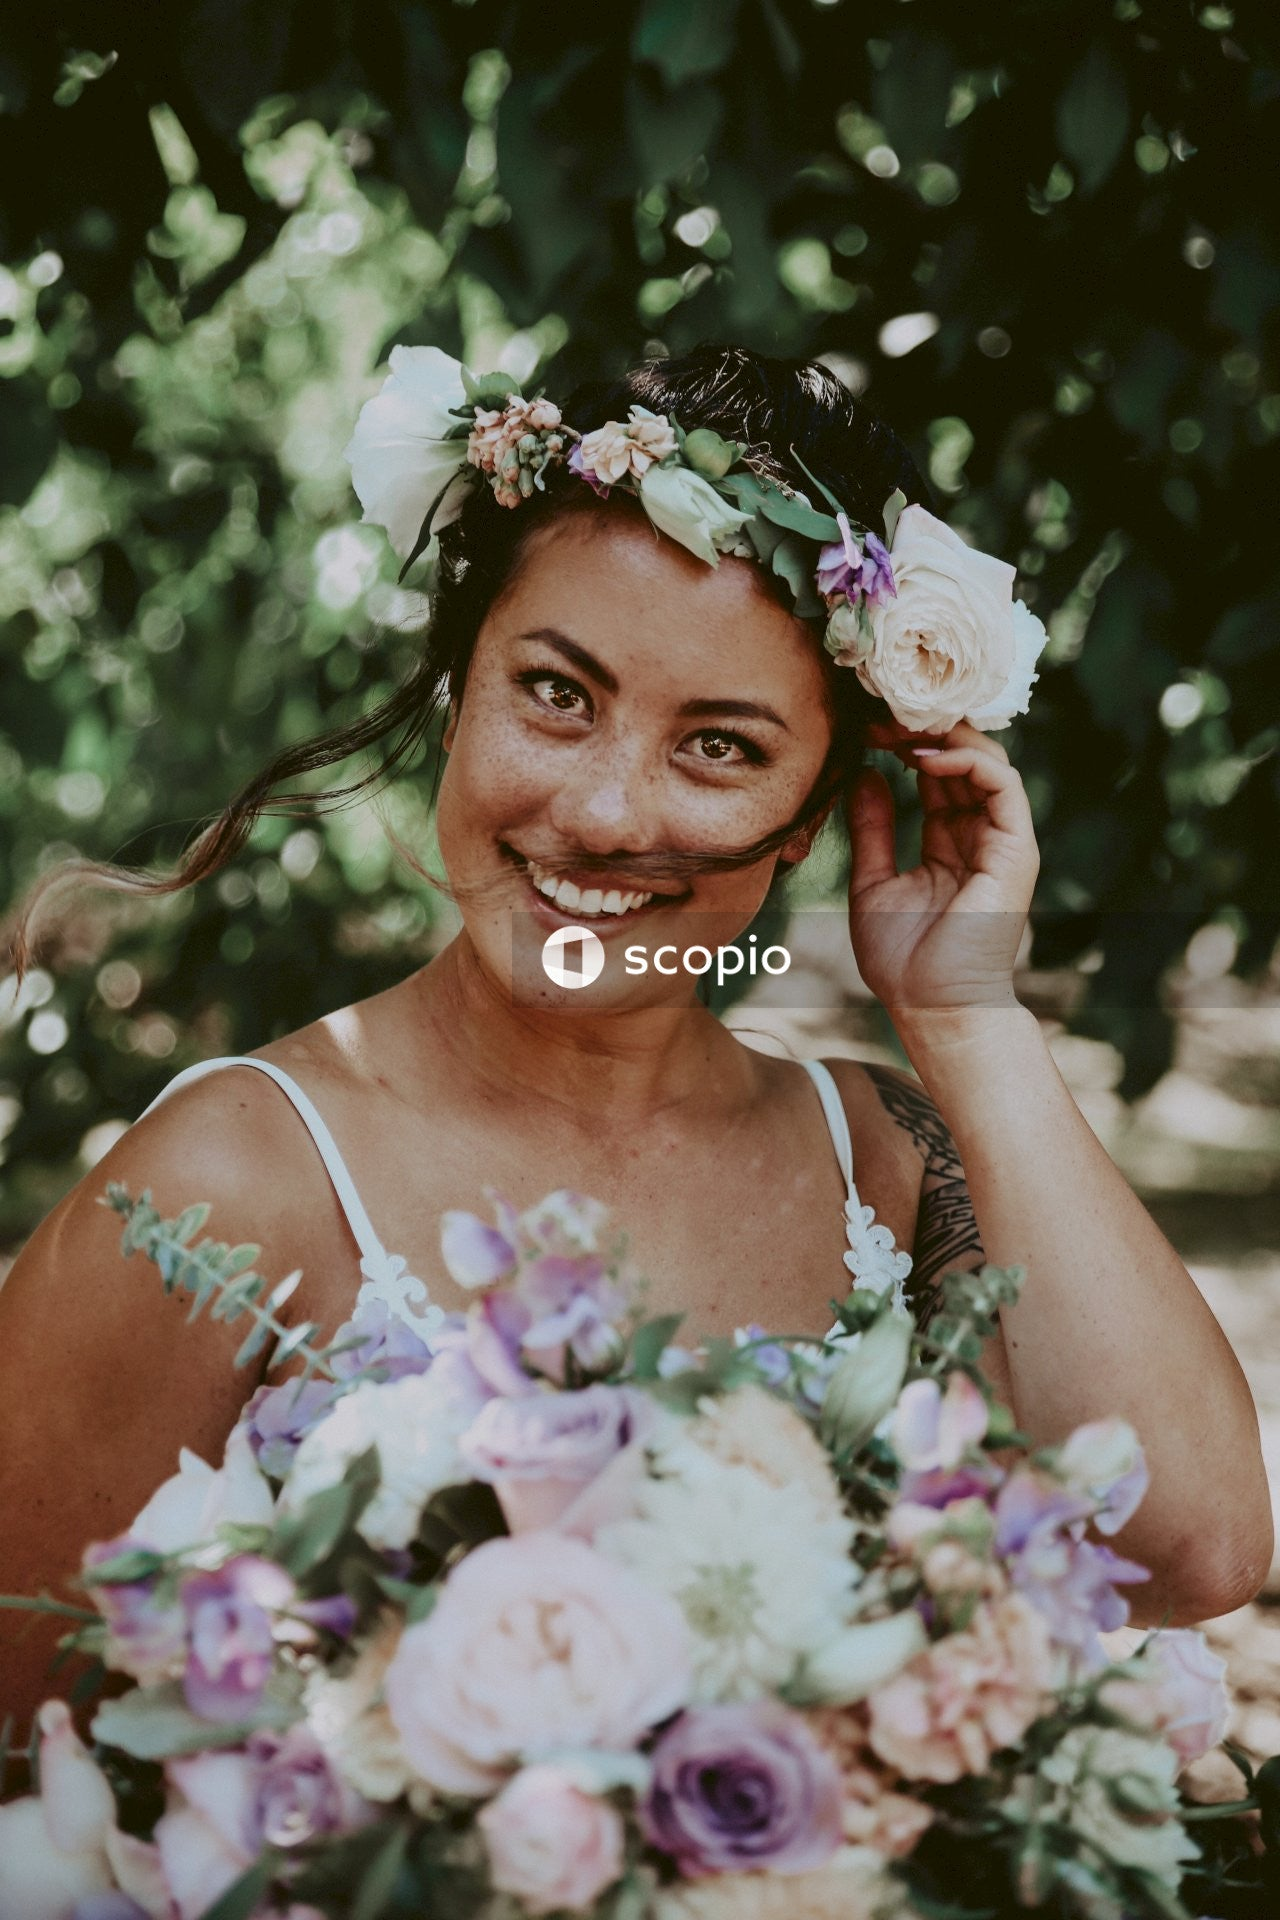 Smiling woman in white tank top holding bouquet of flowers